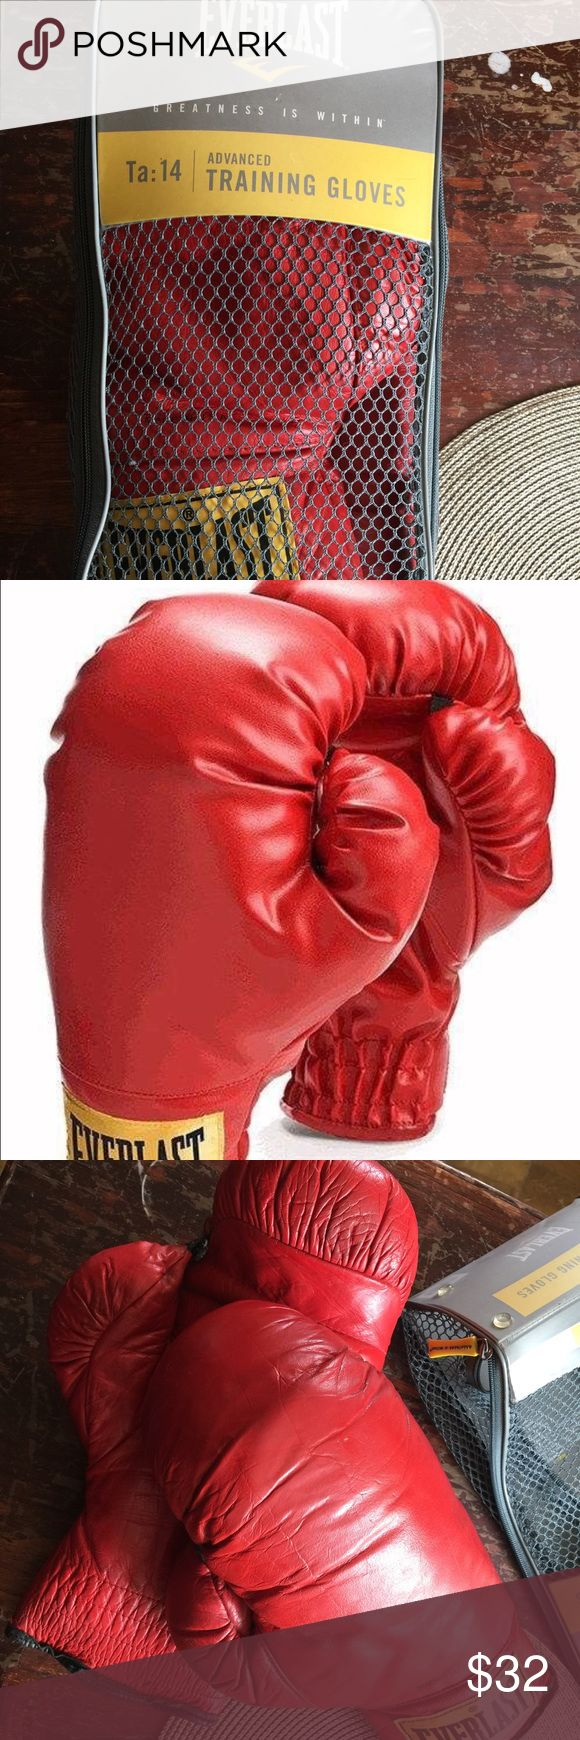 Everlast boxing Gloves Used Everlasting Advanced Pro Style Training Gloves TA:14 #2754. Everlast Other